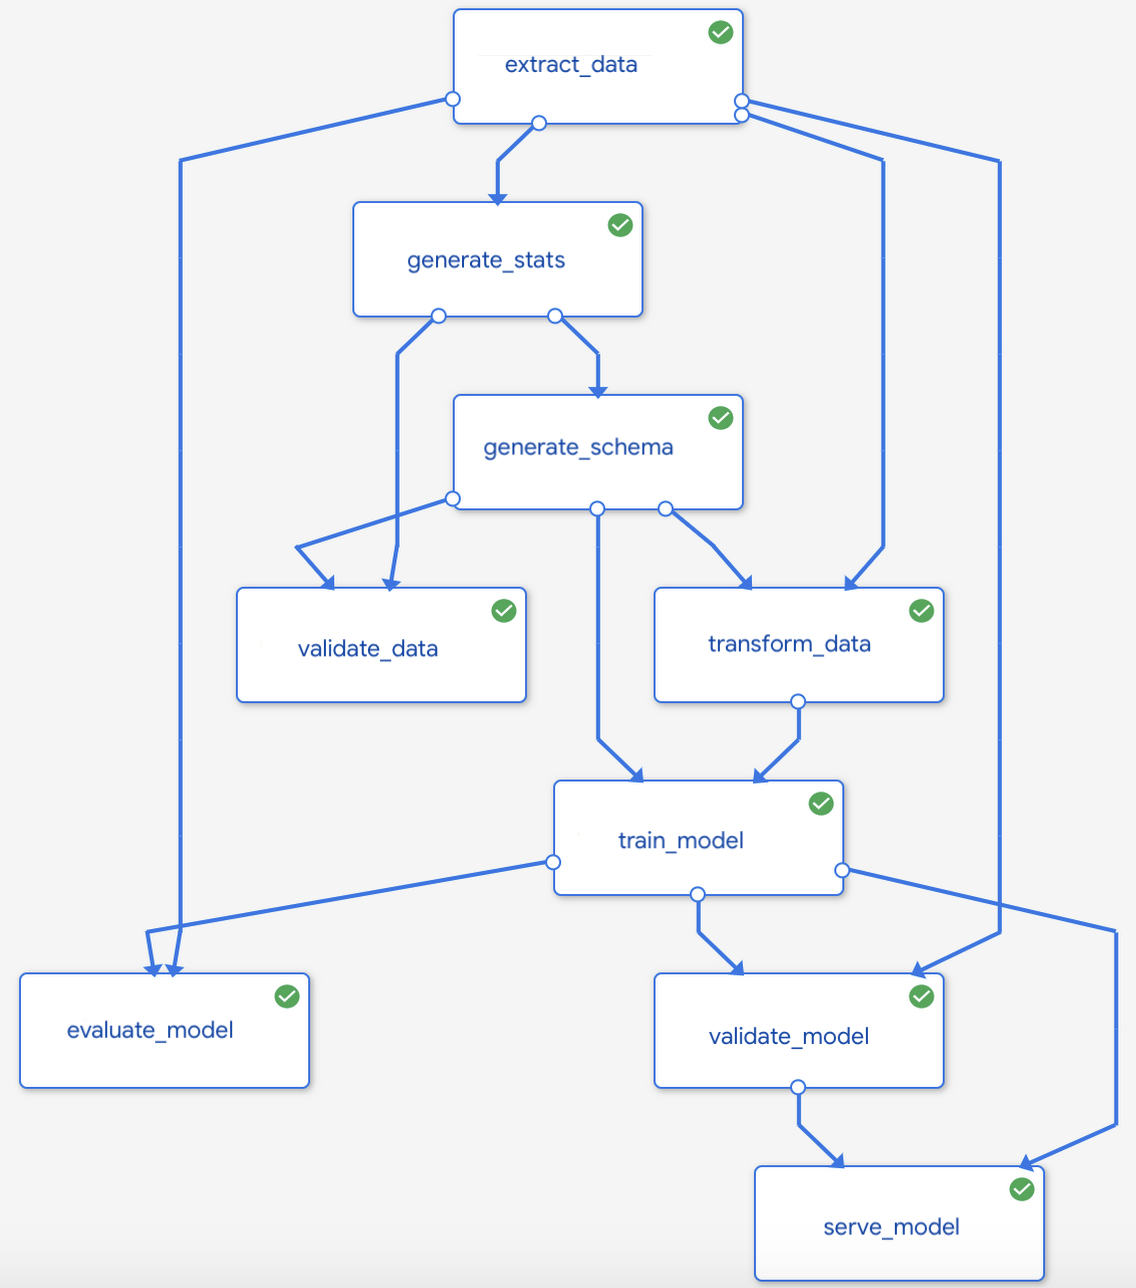 architecture-for-mlops-using-tfx-kubeflow-pipelines-and-cloud-build-4-graph.png